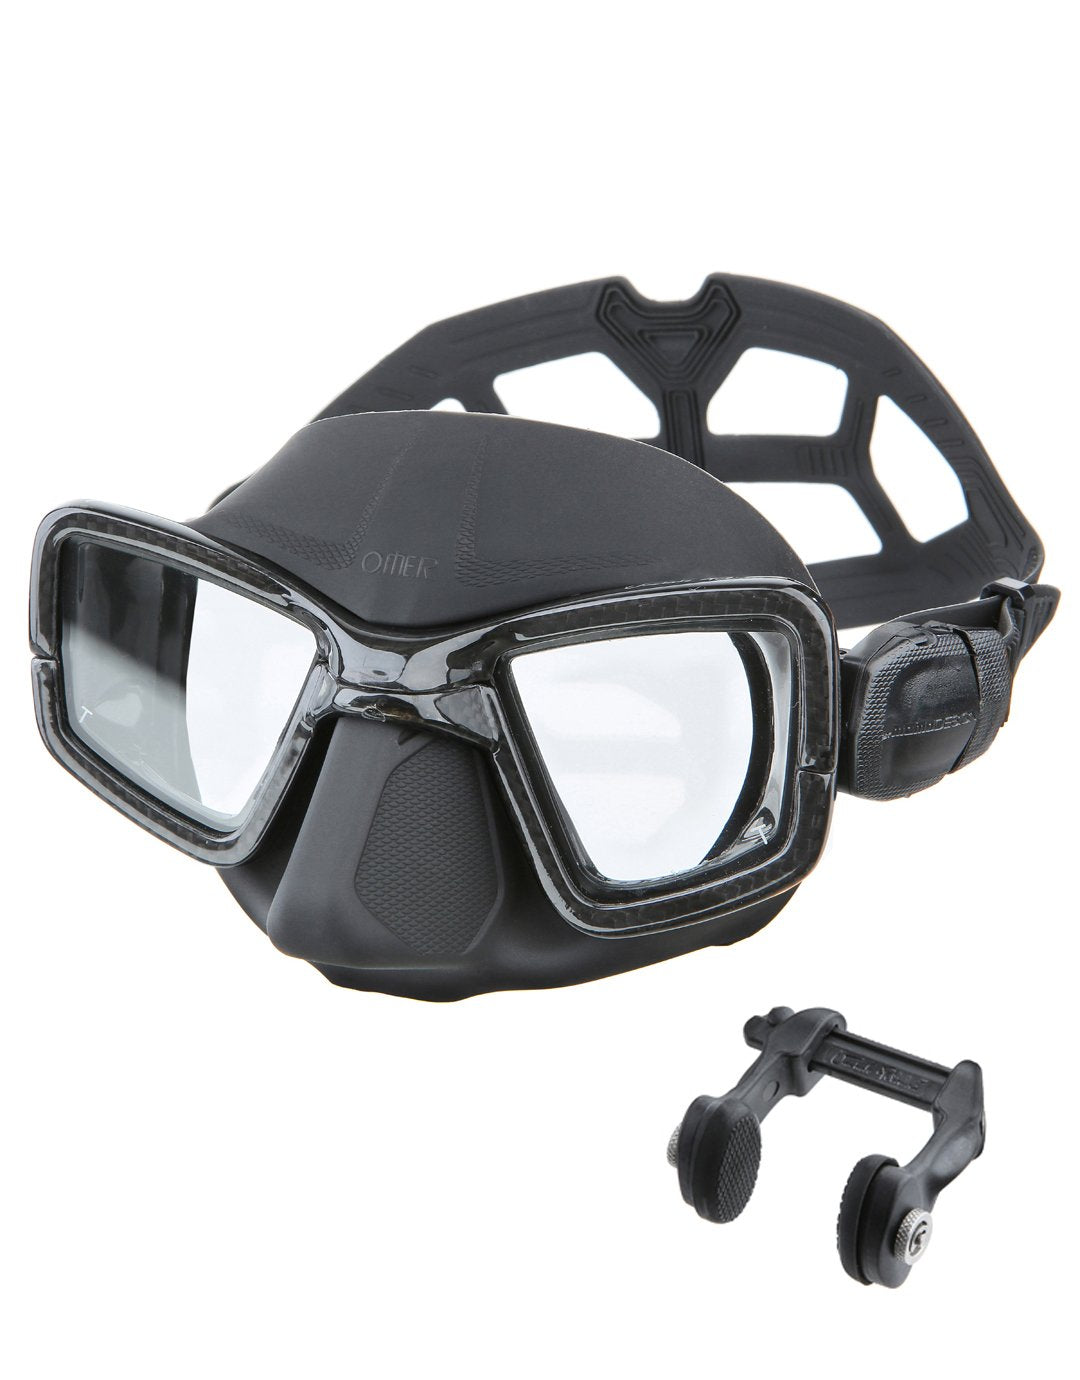 UP M1C Carbon Mask and Nose Clip